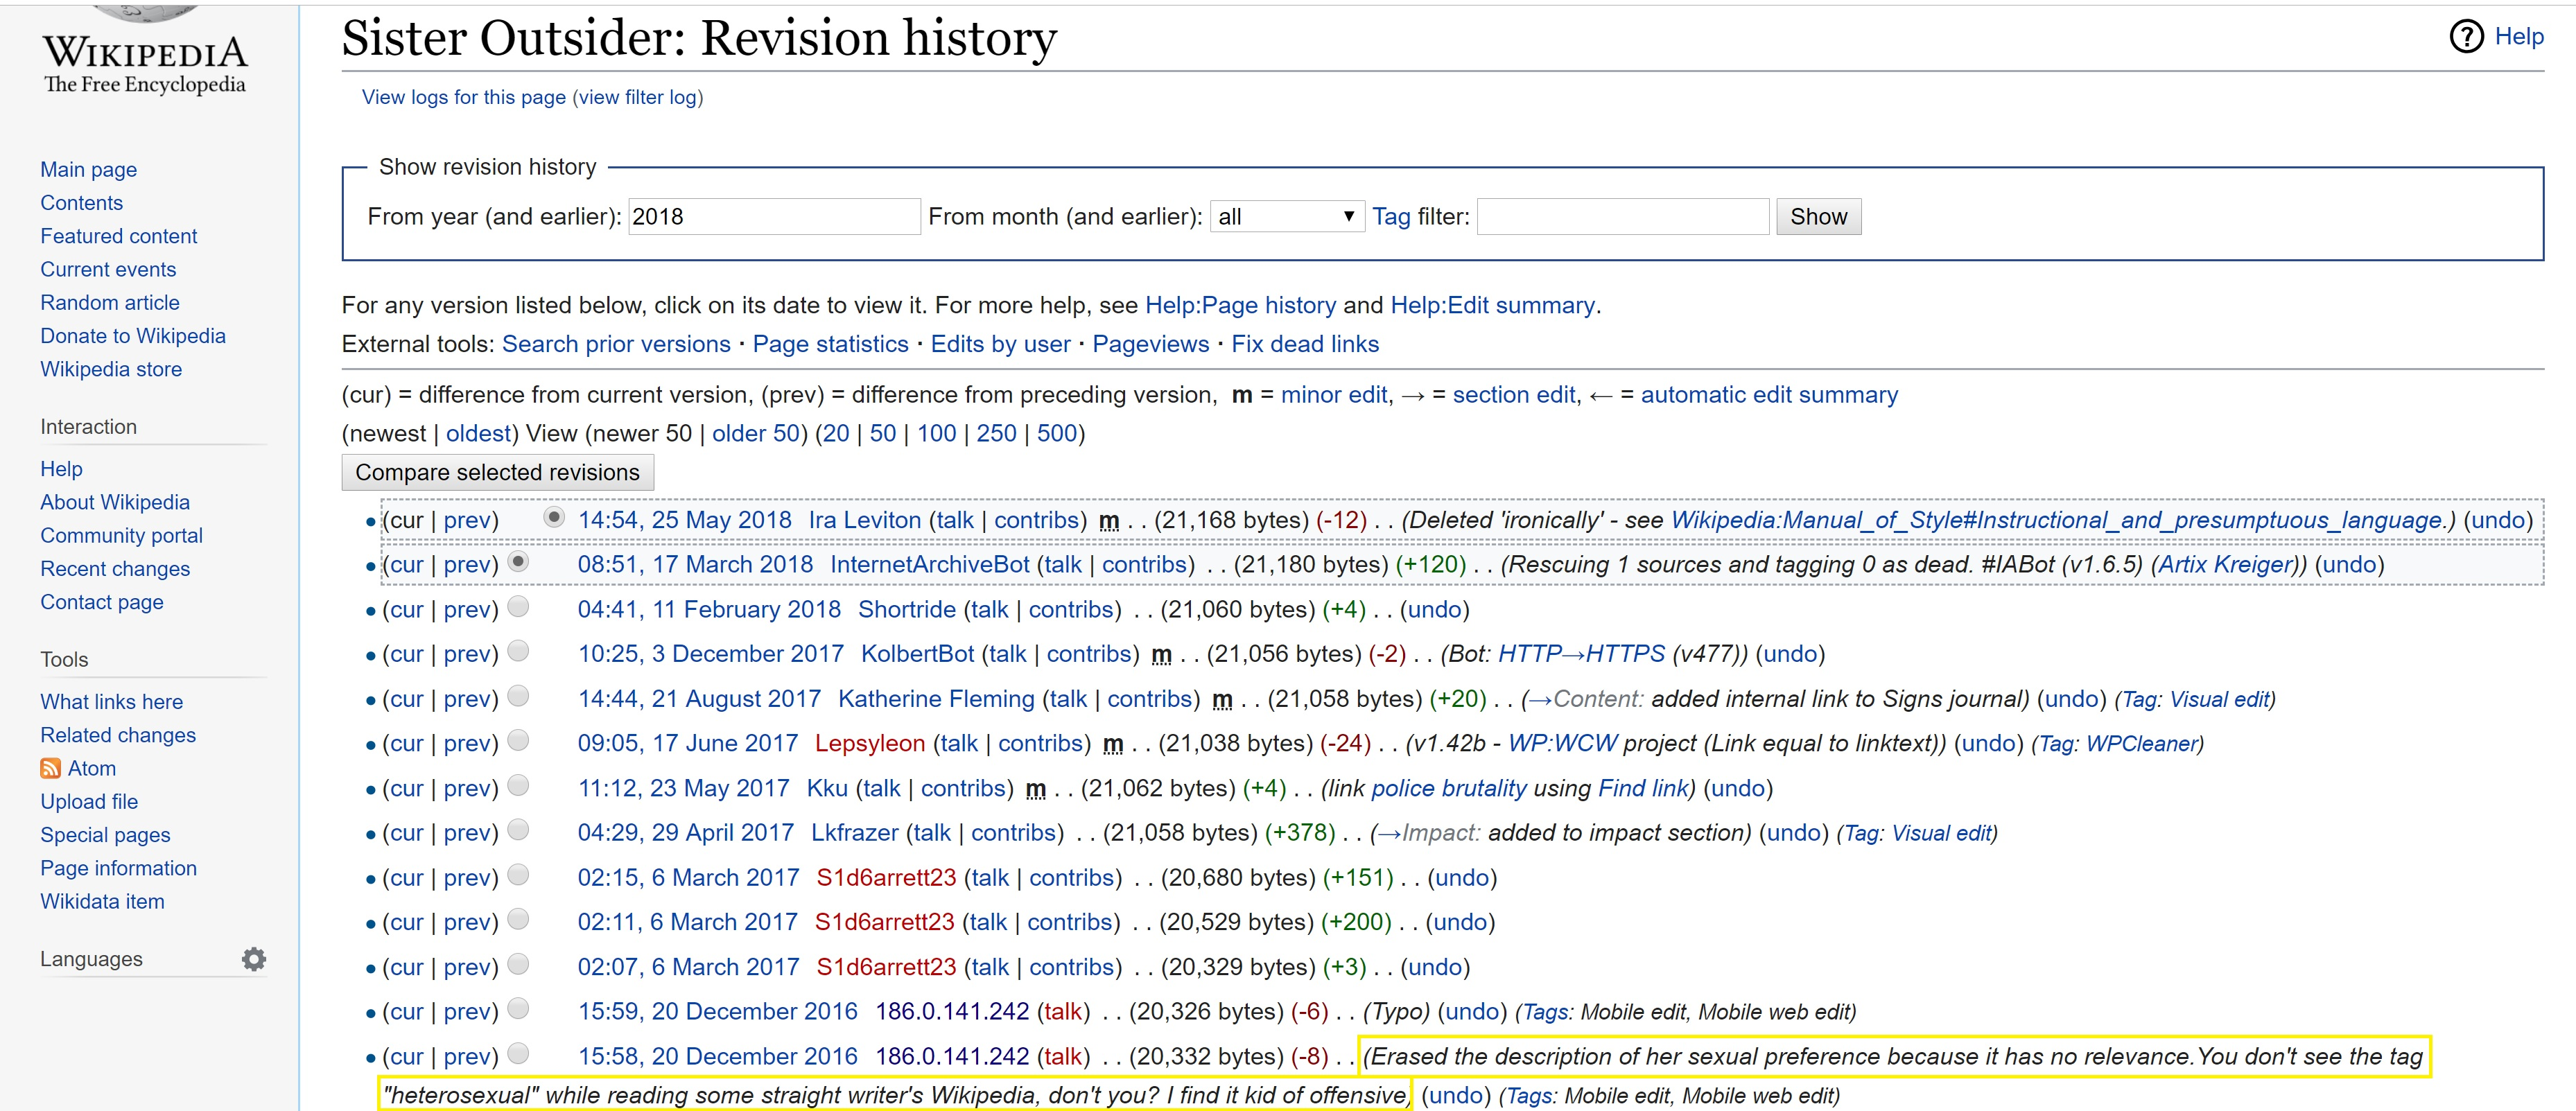 "Screenshot showing the revision history for a Wikipedia article on Audre Lorde's ""Sister Outsider."" A highlighted revision from 20 December 2016 shows an editor's challenge to the inclusion of Lorde's self-described sexuality in the article."